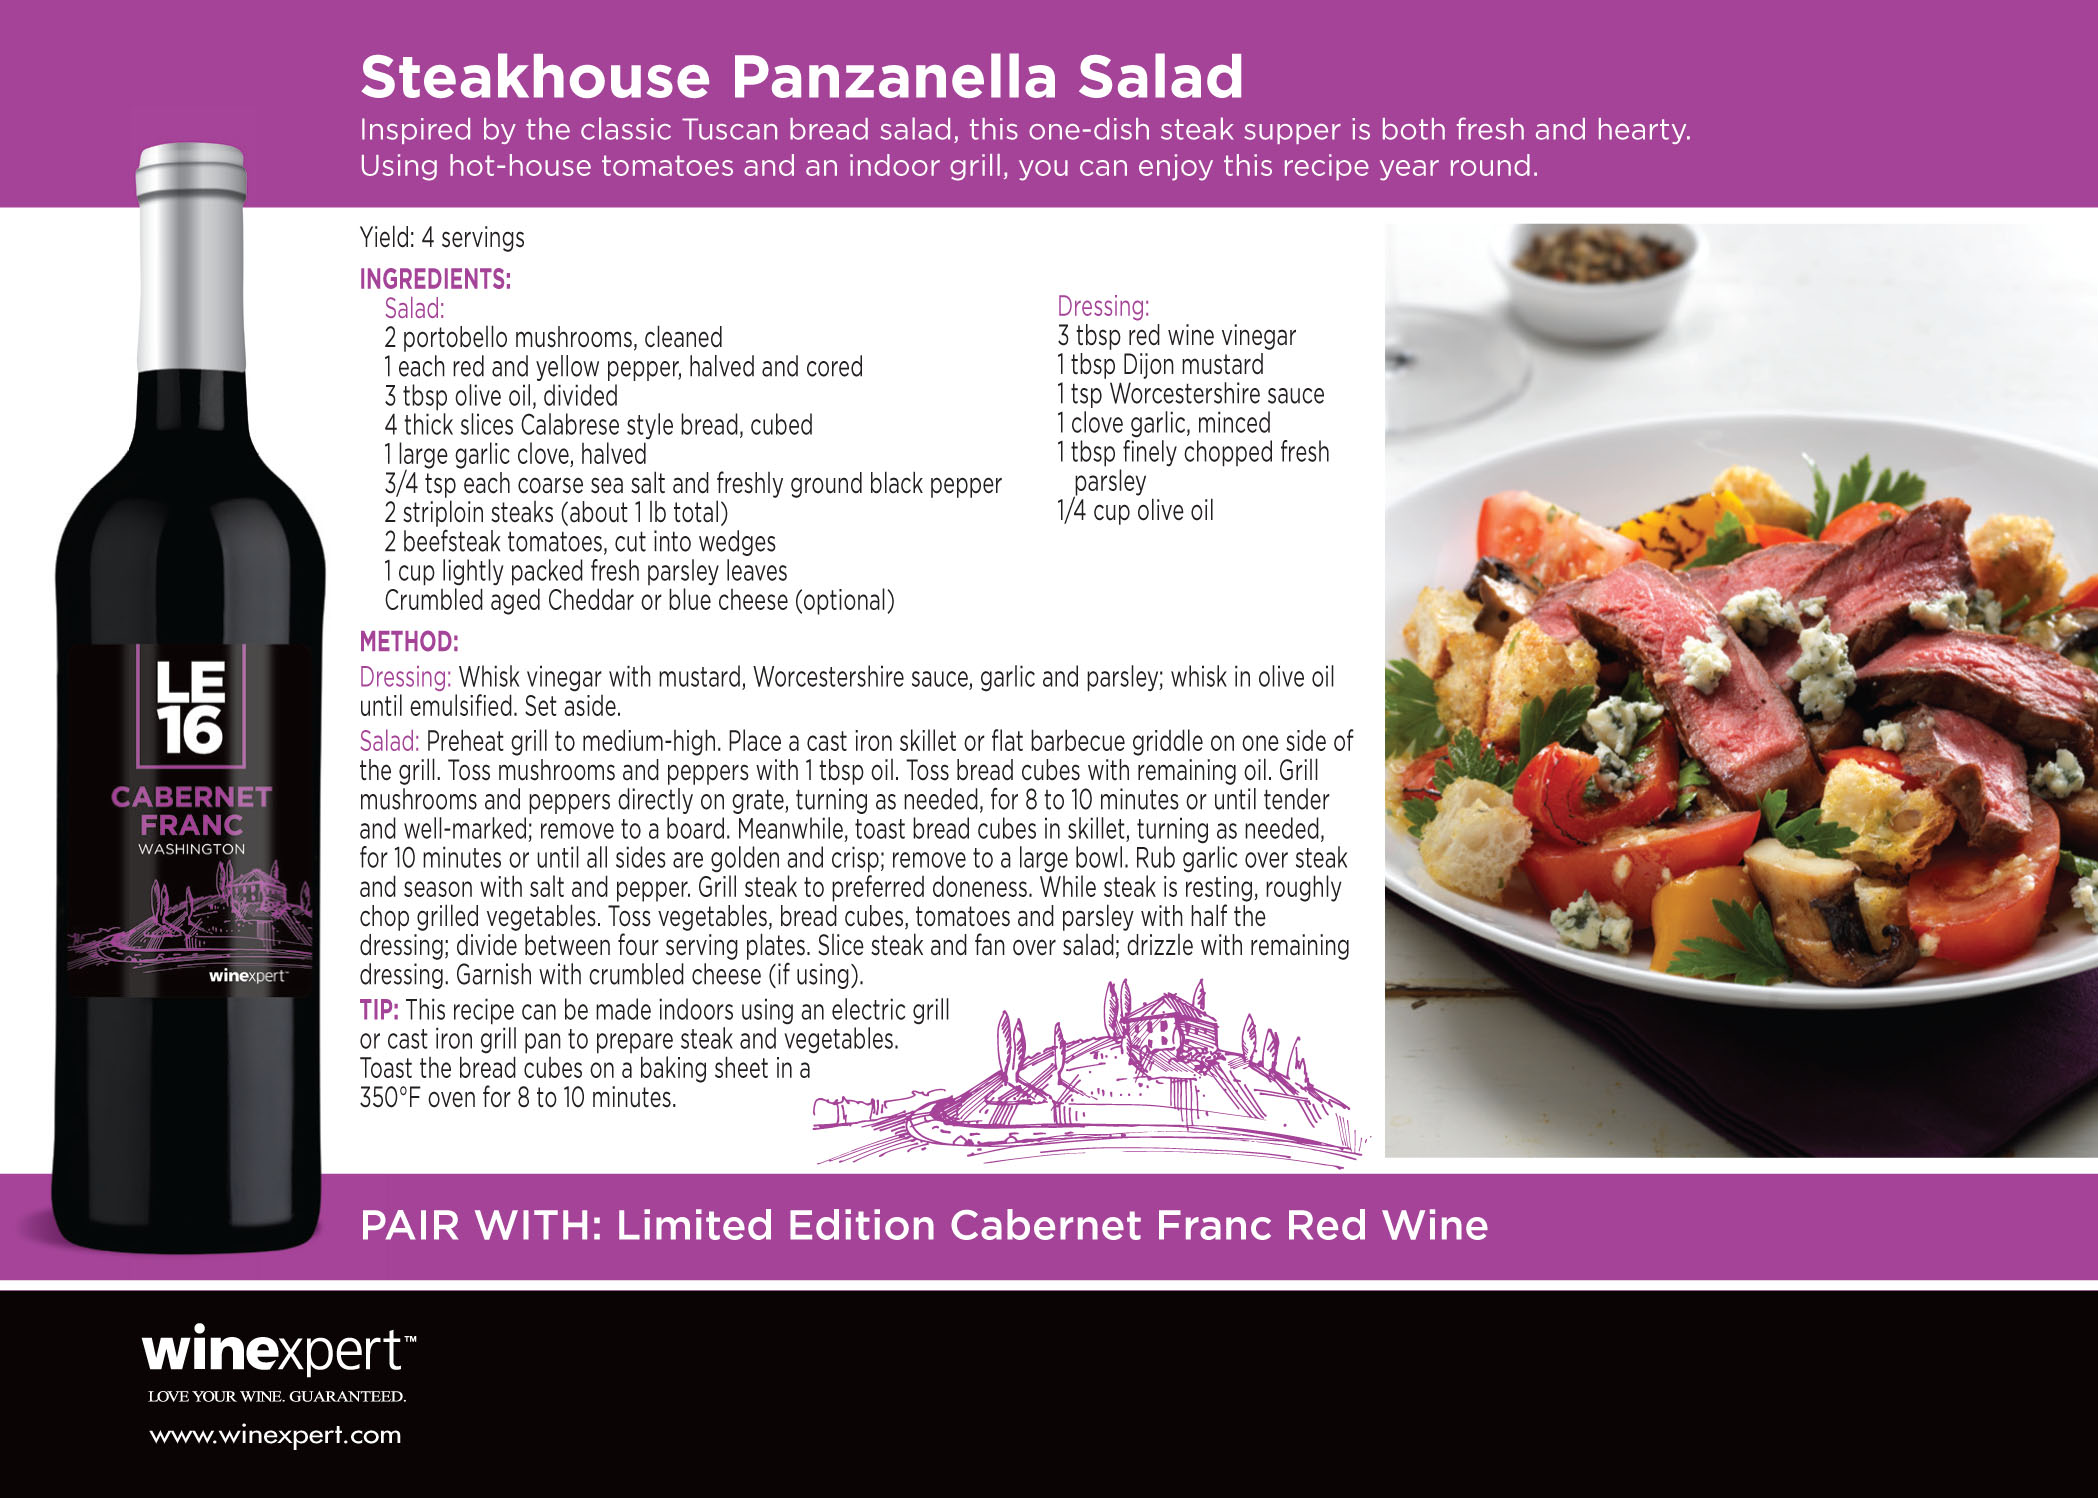 Impressive pairings steakhouse panzanella a down to earth 16445 wxle16recipecardcabernet francx1a fnl forumfinder Images